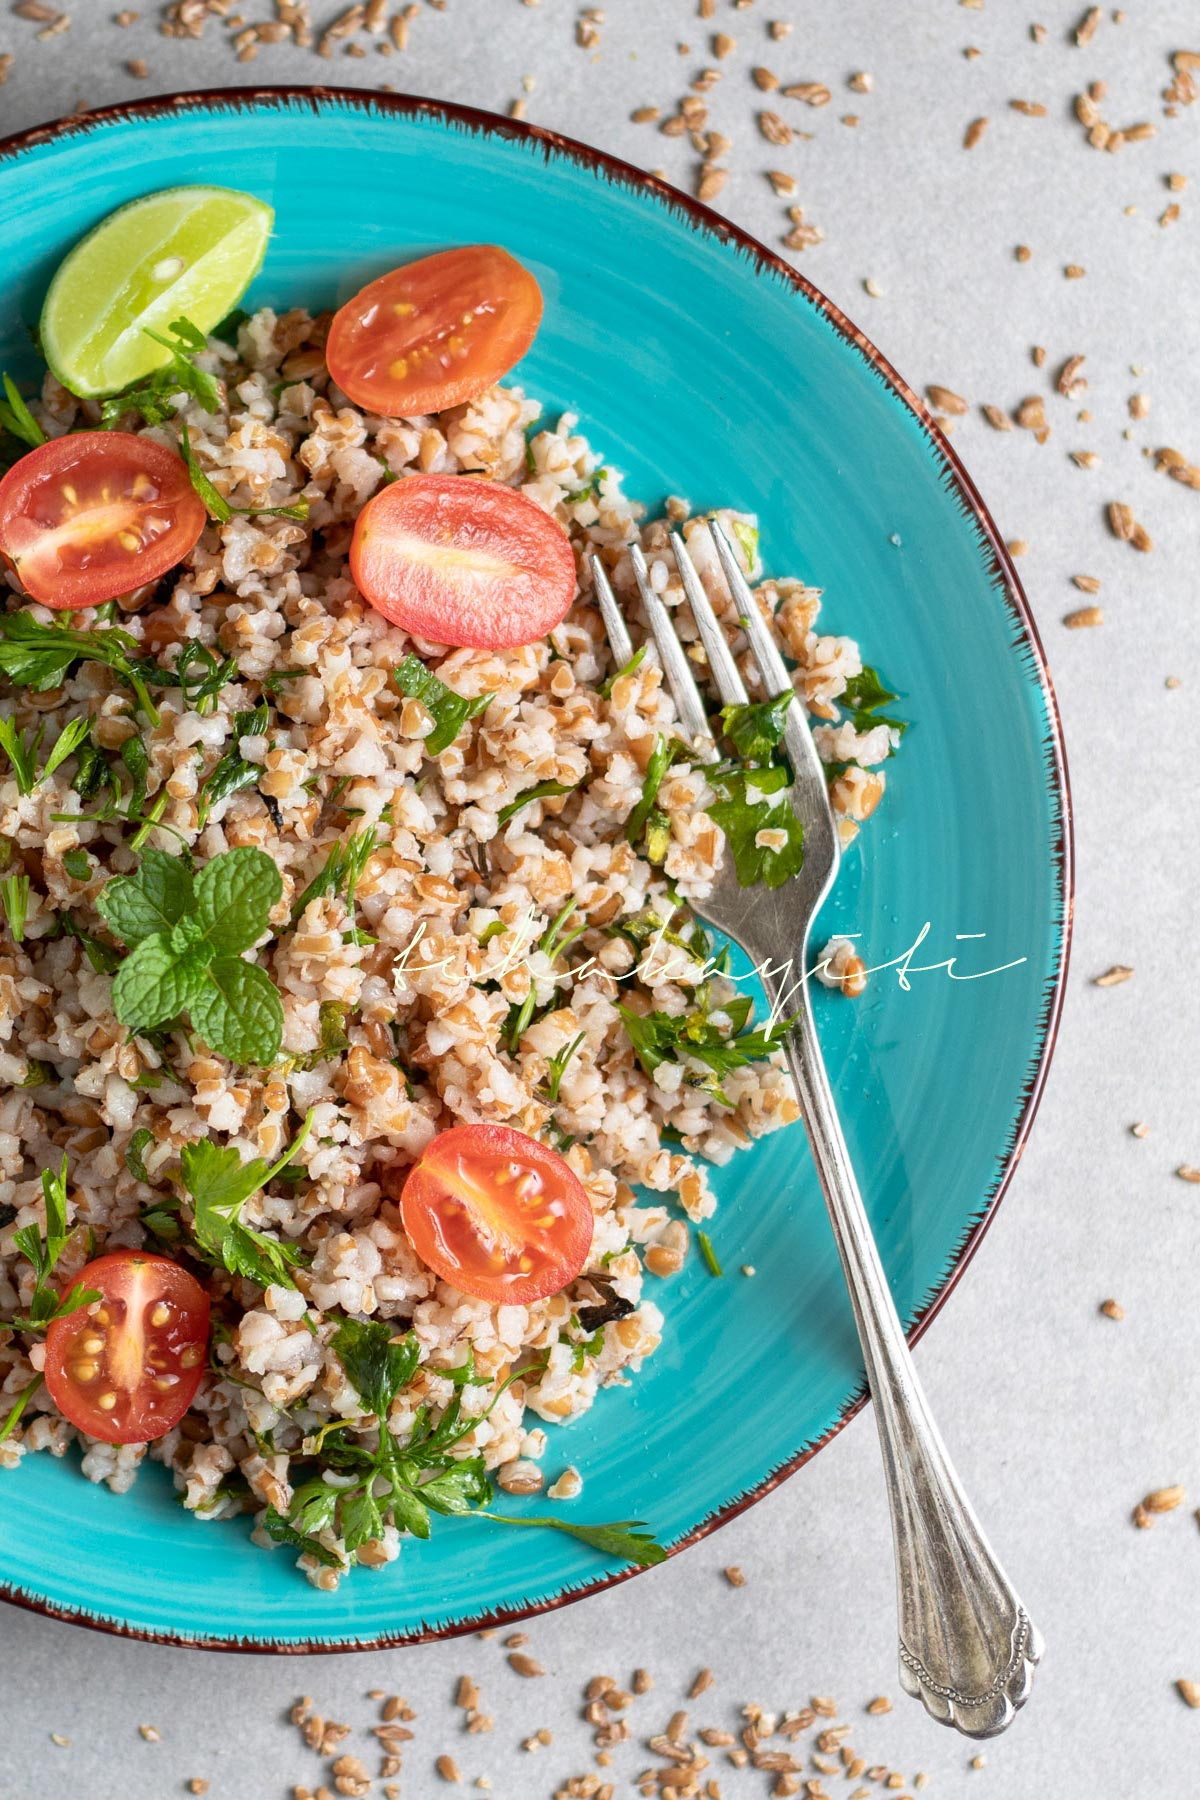 Infused with fresh parsley and peppermint leaves, his red bulgur salad is light and fluffy. And it's a breeze to make. | tchakayiti.com